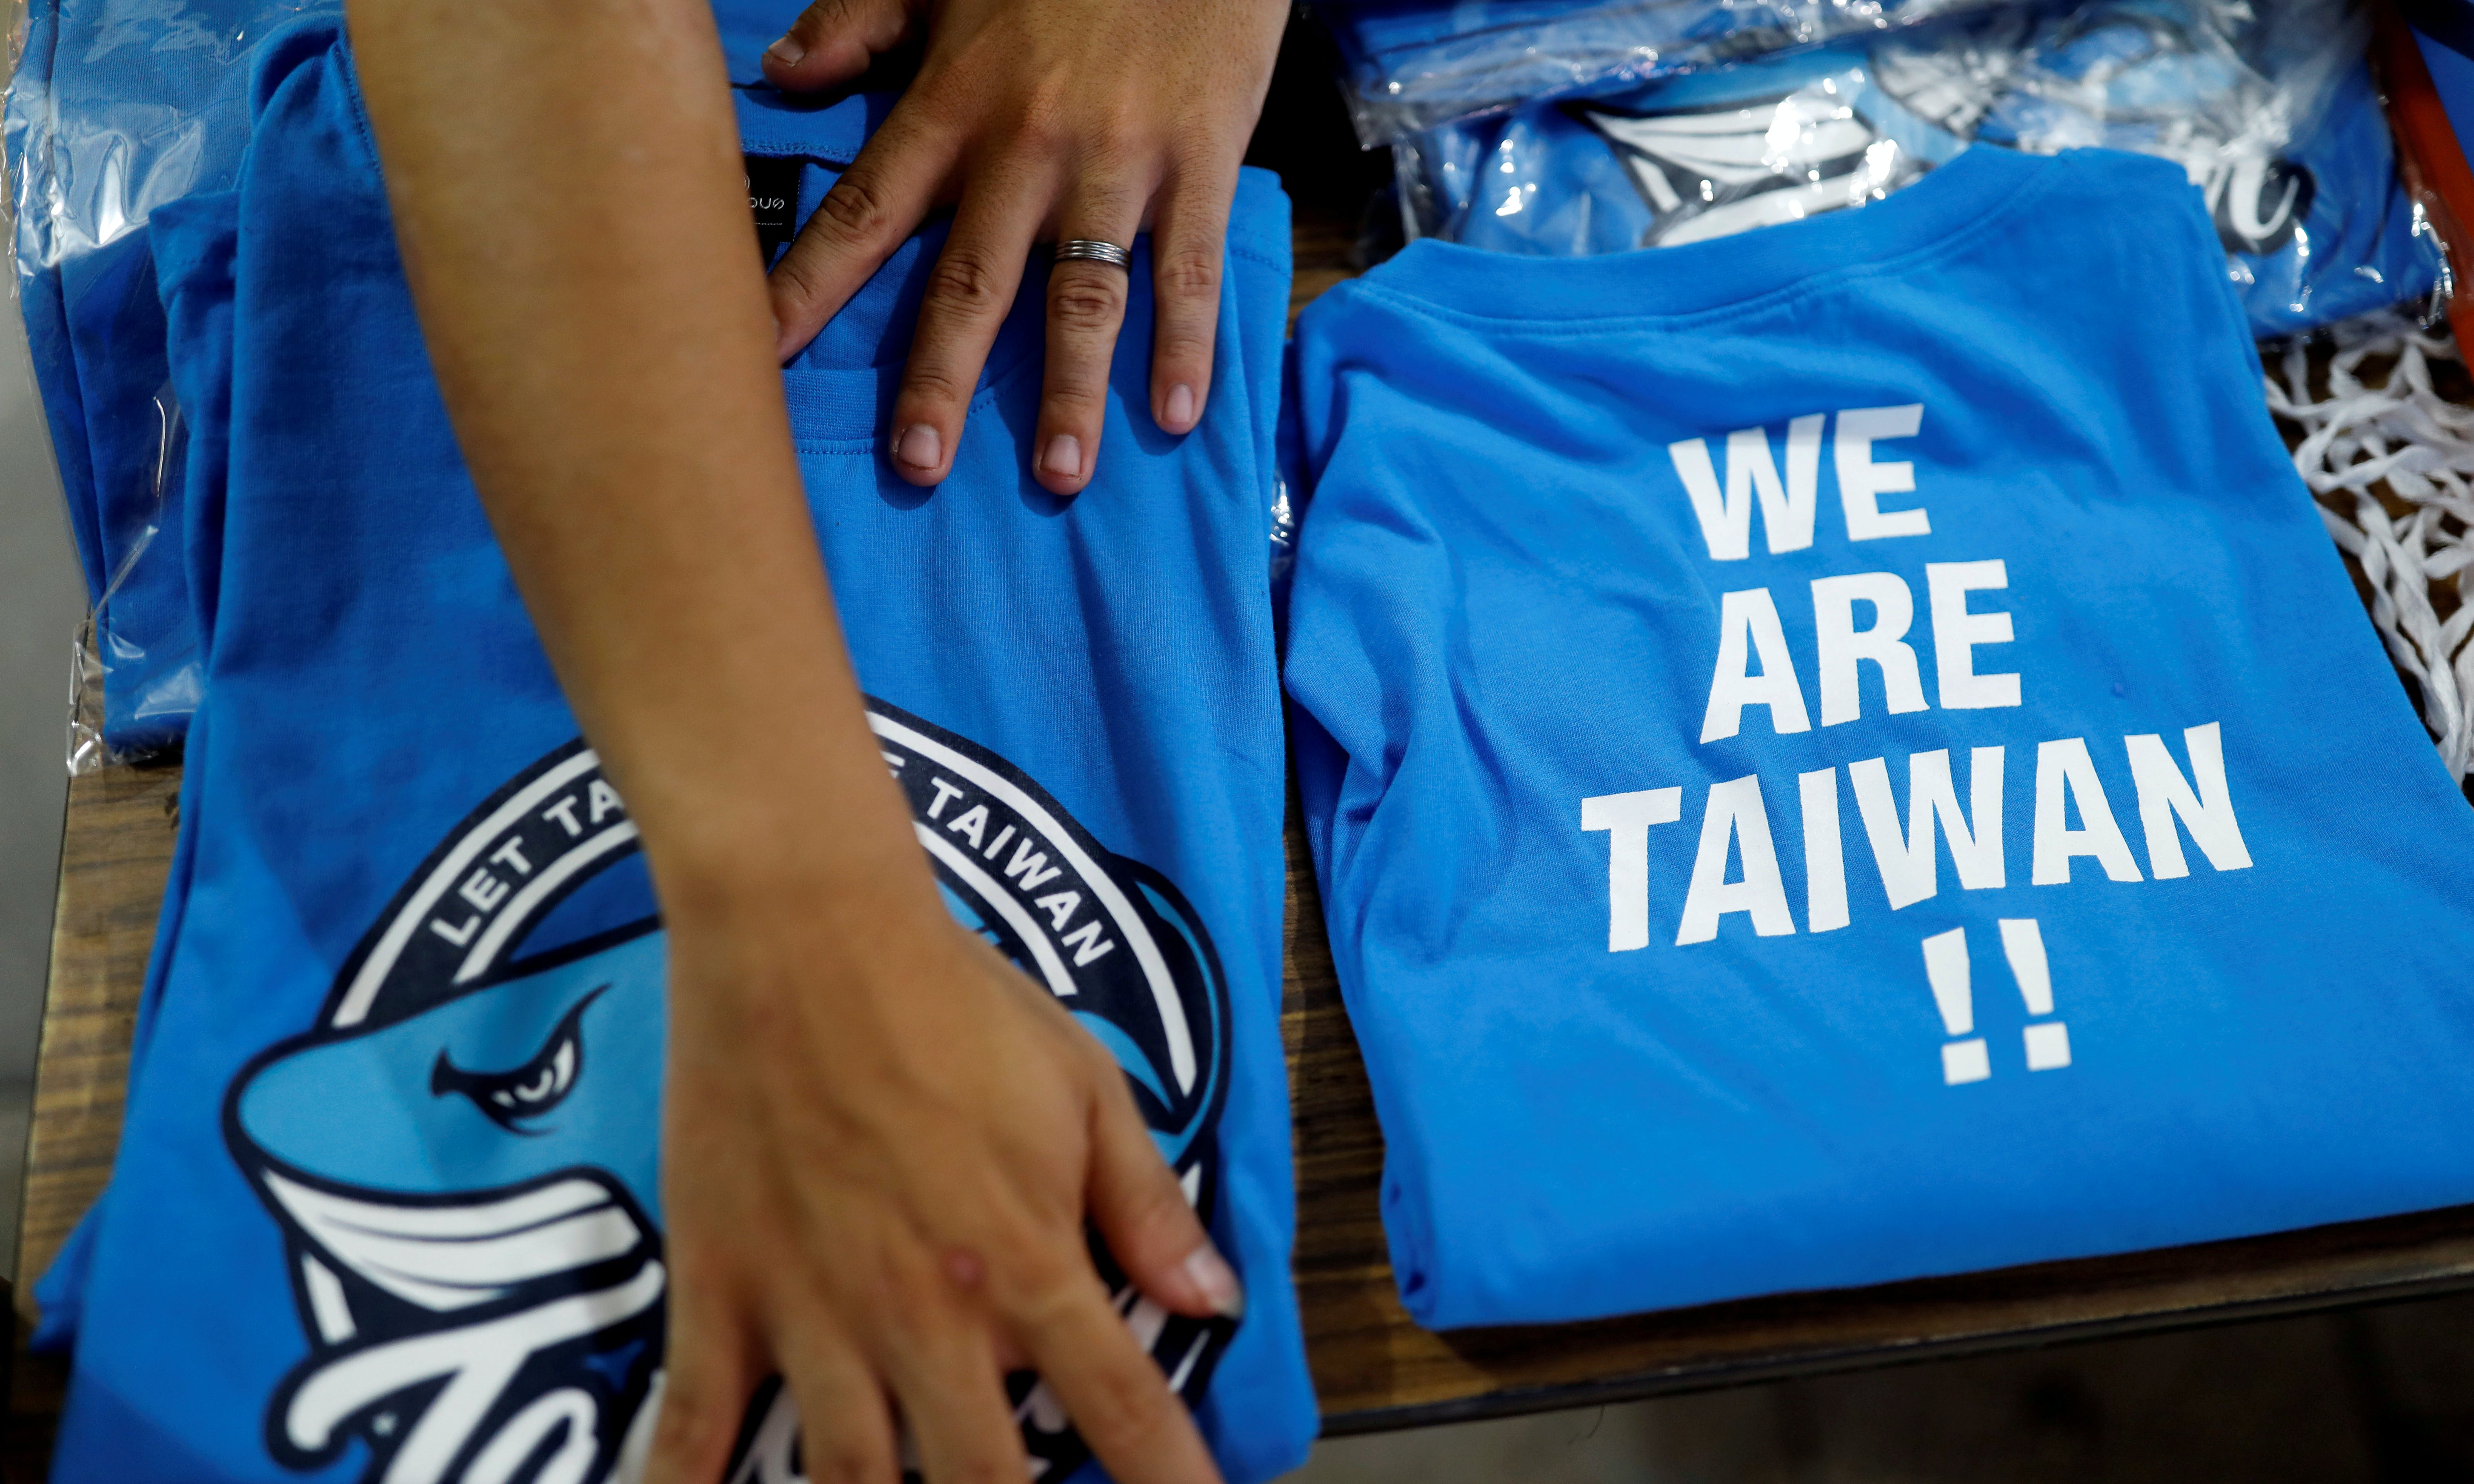 OPINION: Failure of Olympic Name Poll Shows Taiwanese Voters' Pragmatism